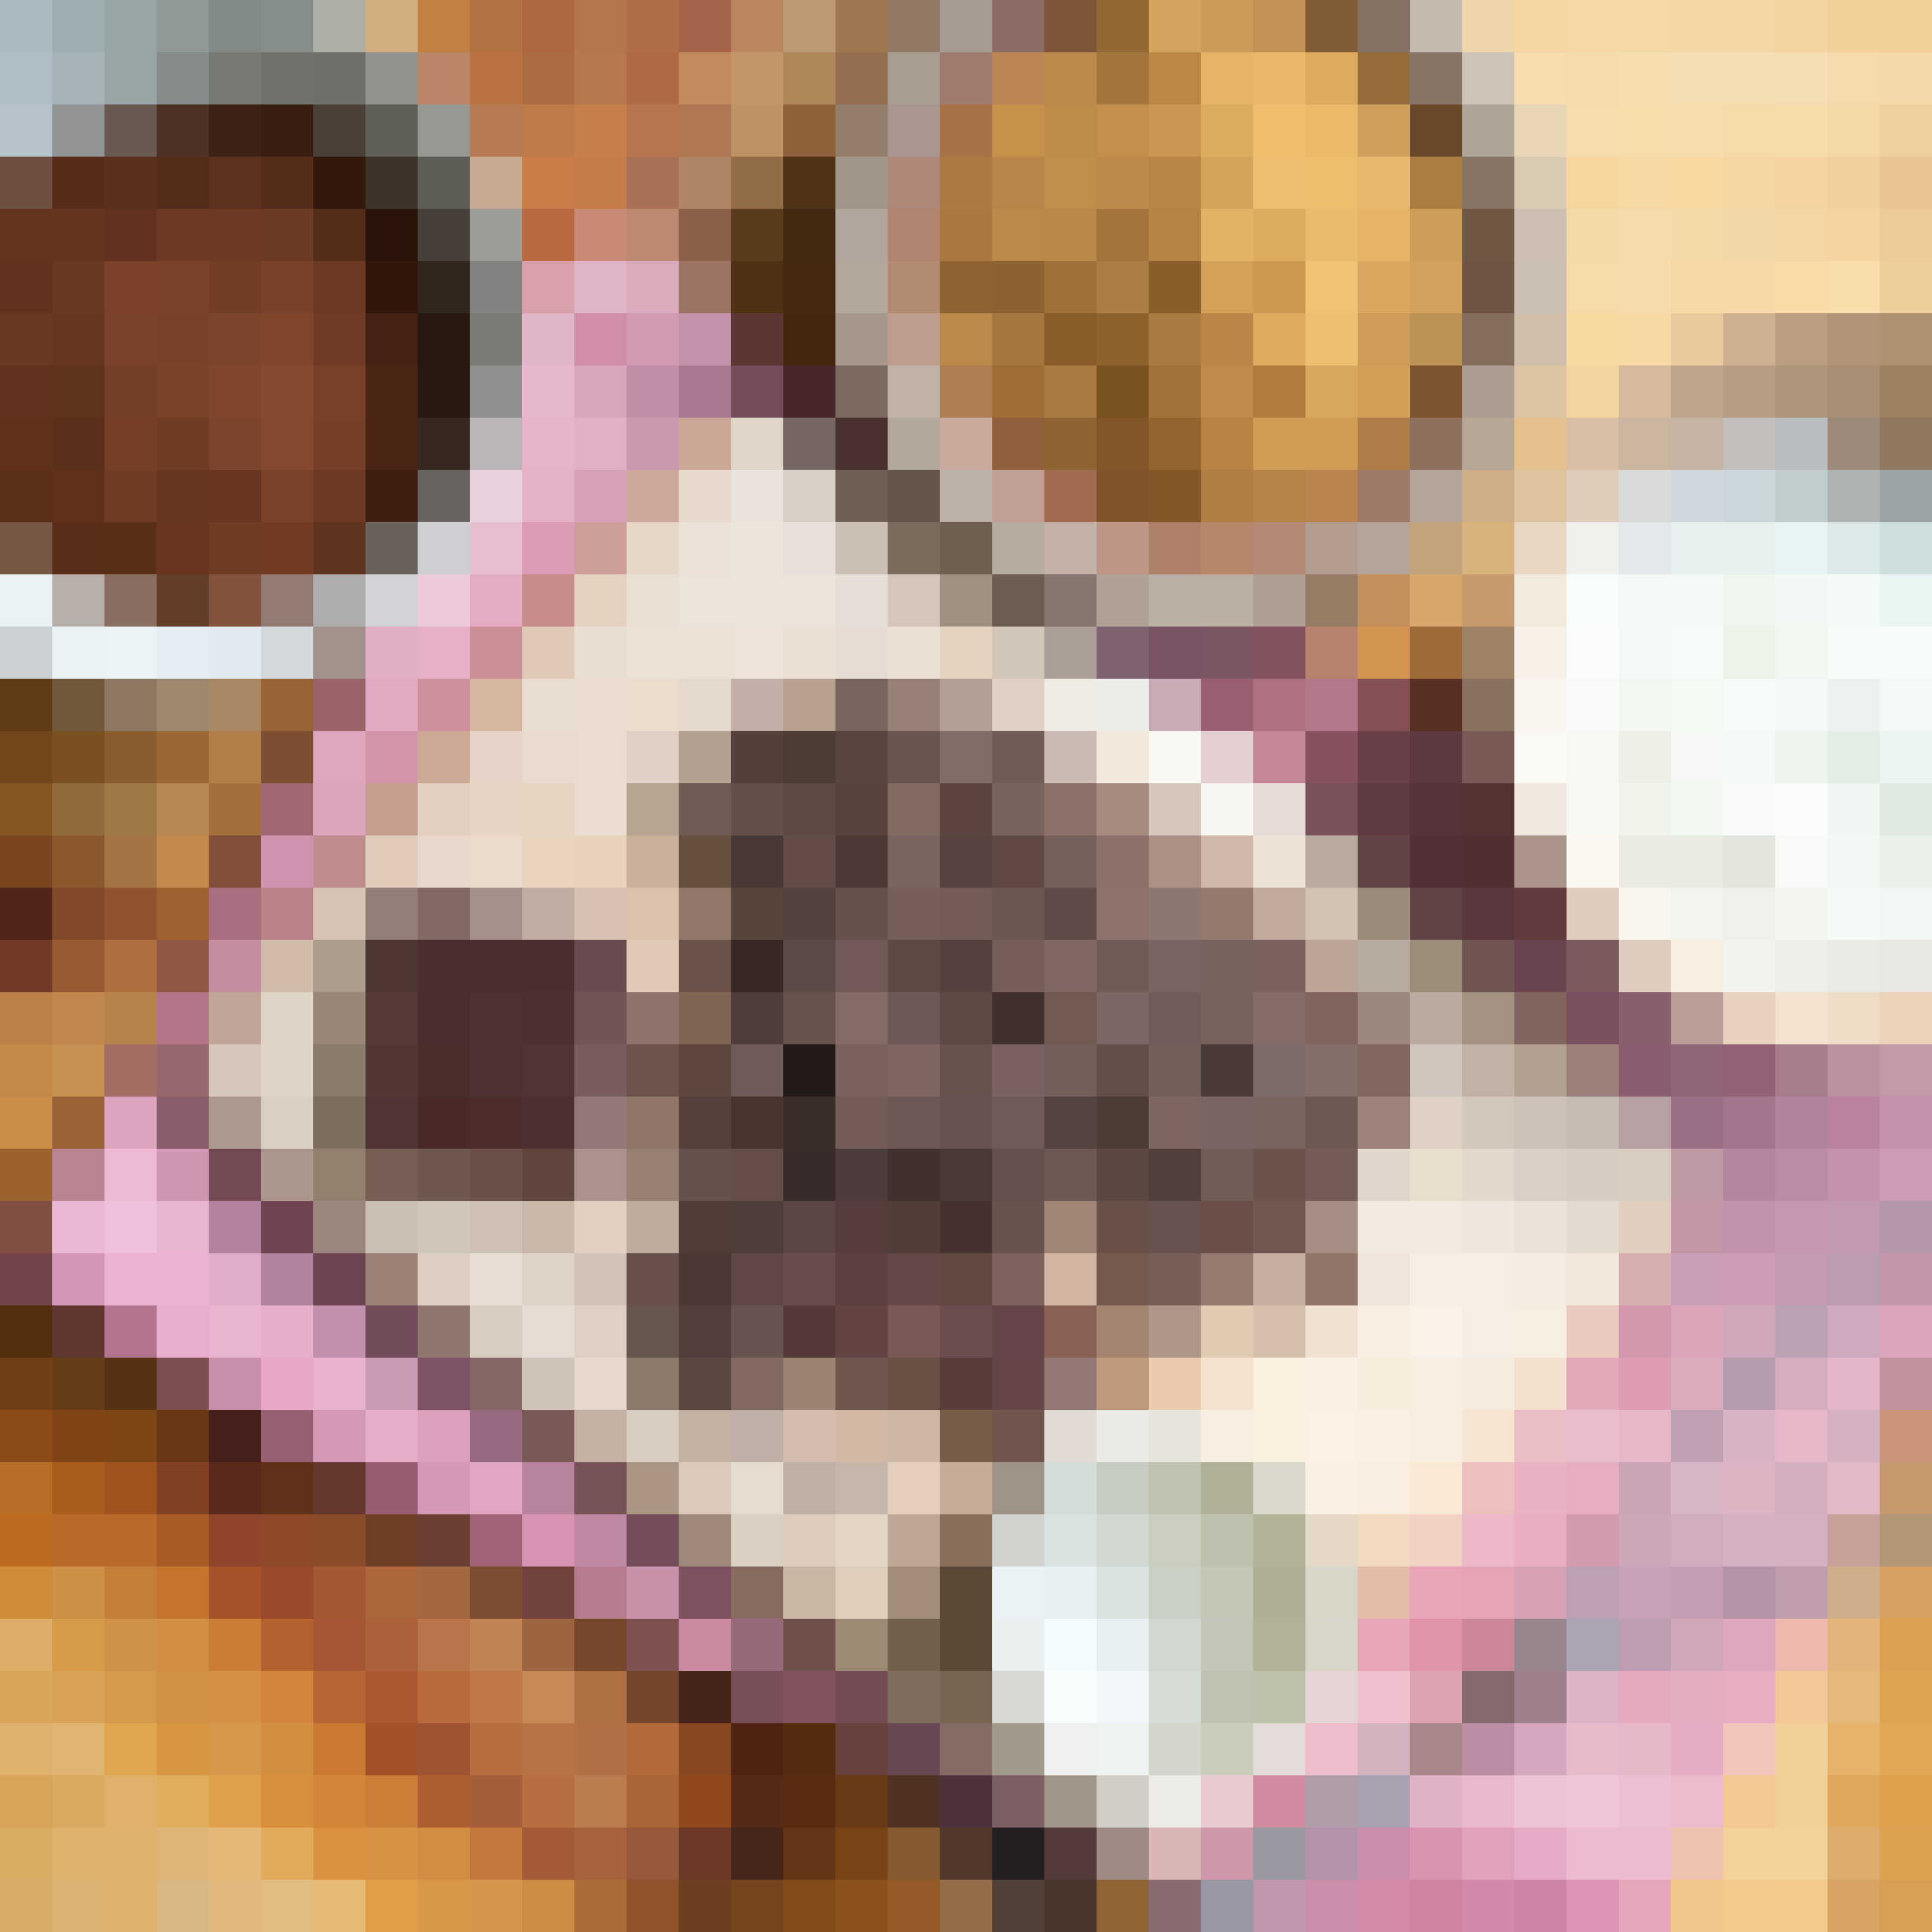 How To Make Your Own Hot Cocoa Mix: gallery image 2